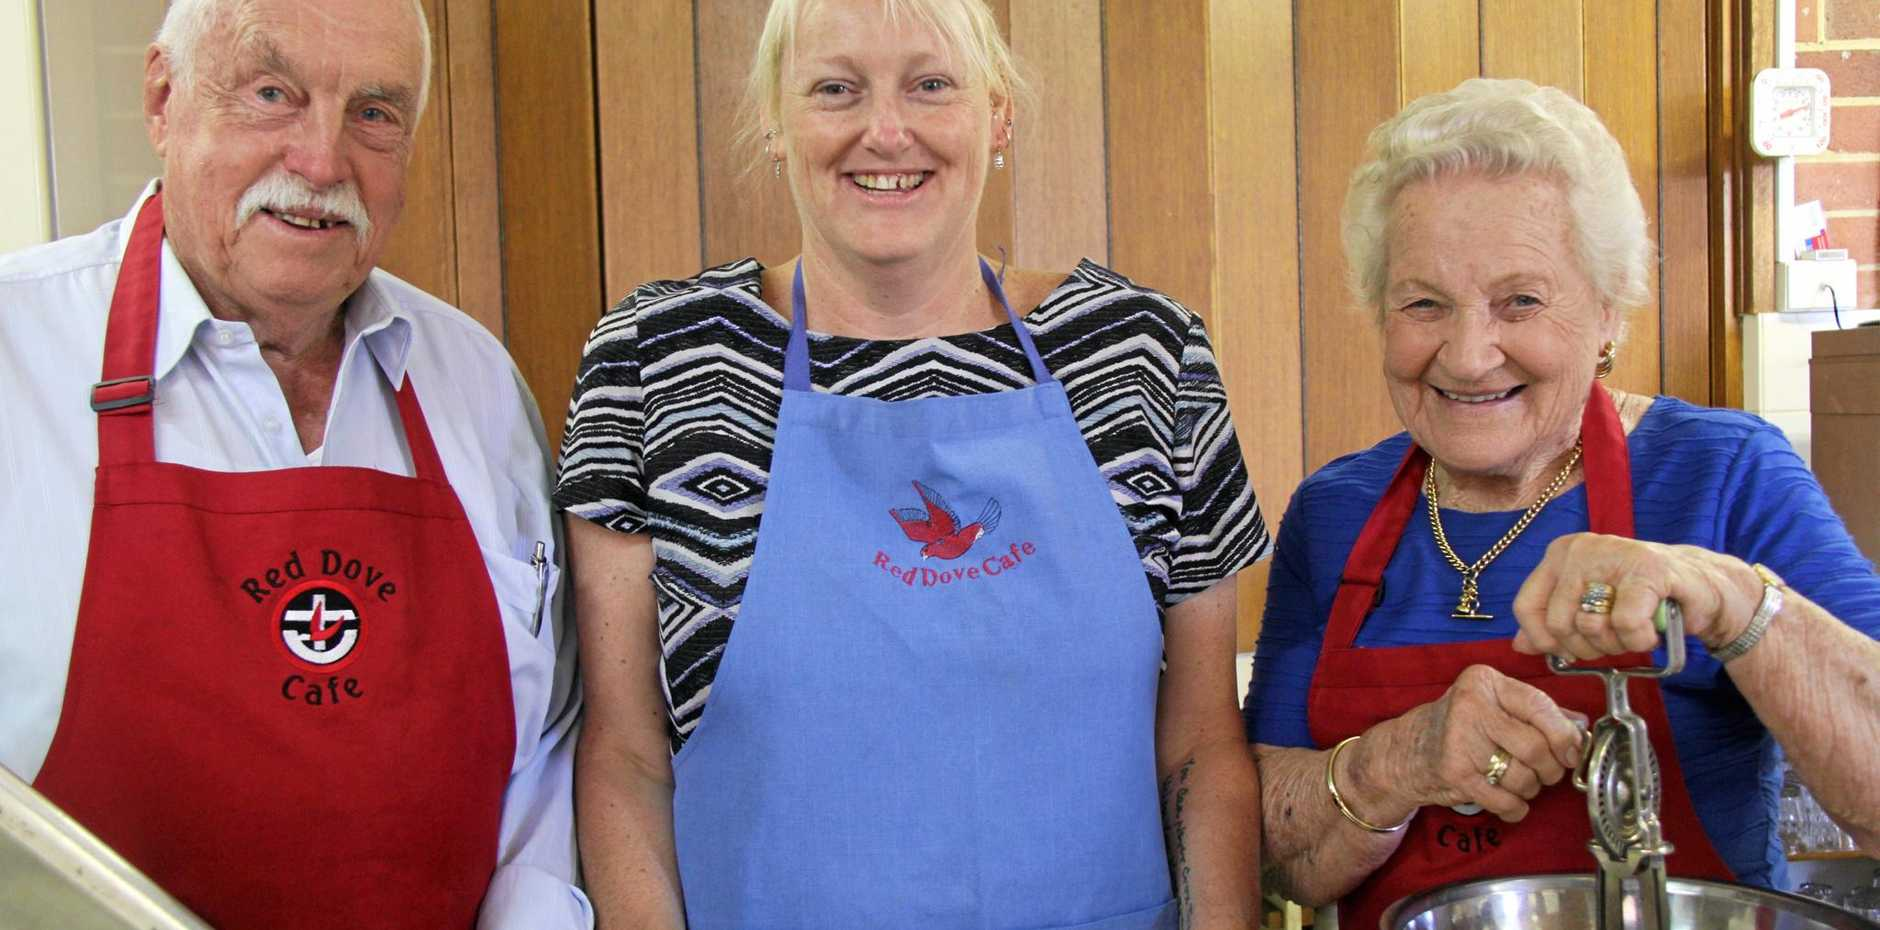 Lismore Regional Mission's pastoral support assistant Evelyn Daley is flanked by volunteers John Mace and Lola Ingram ahead of a fundraising event to help school children start the day  with a good breakfast.